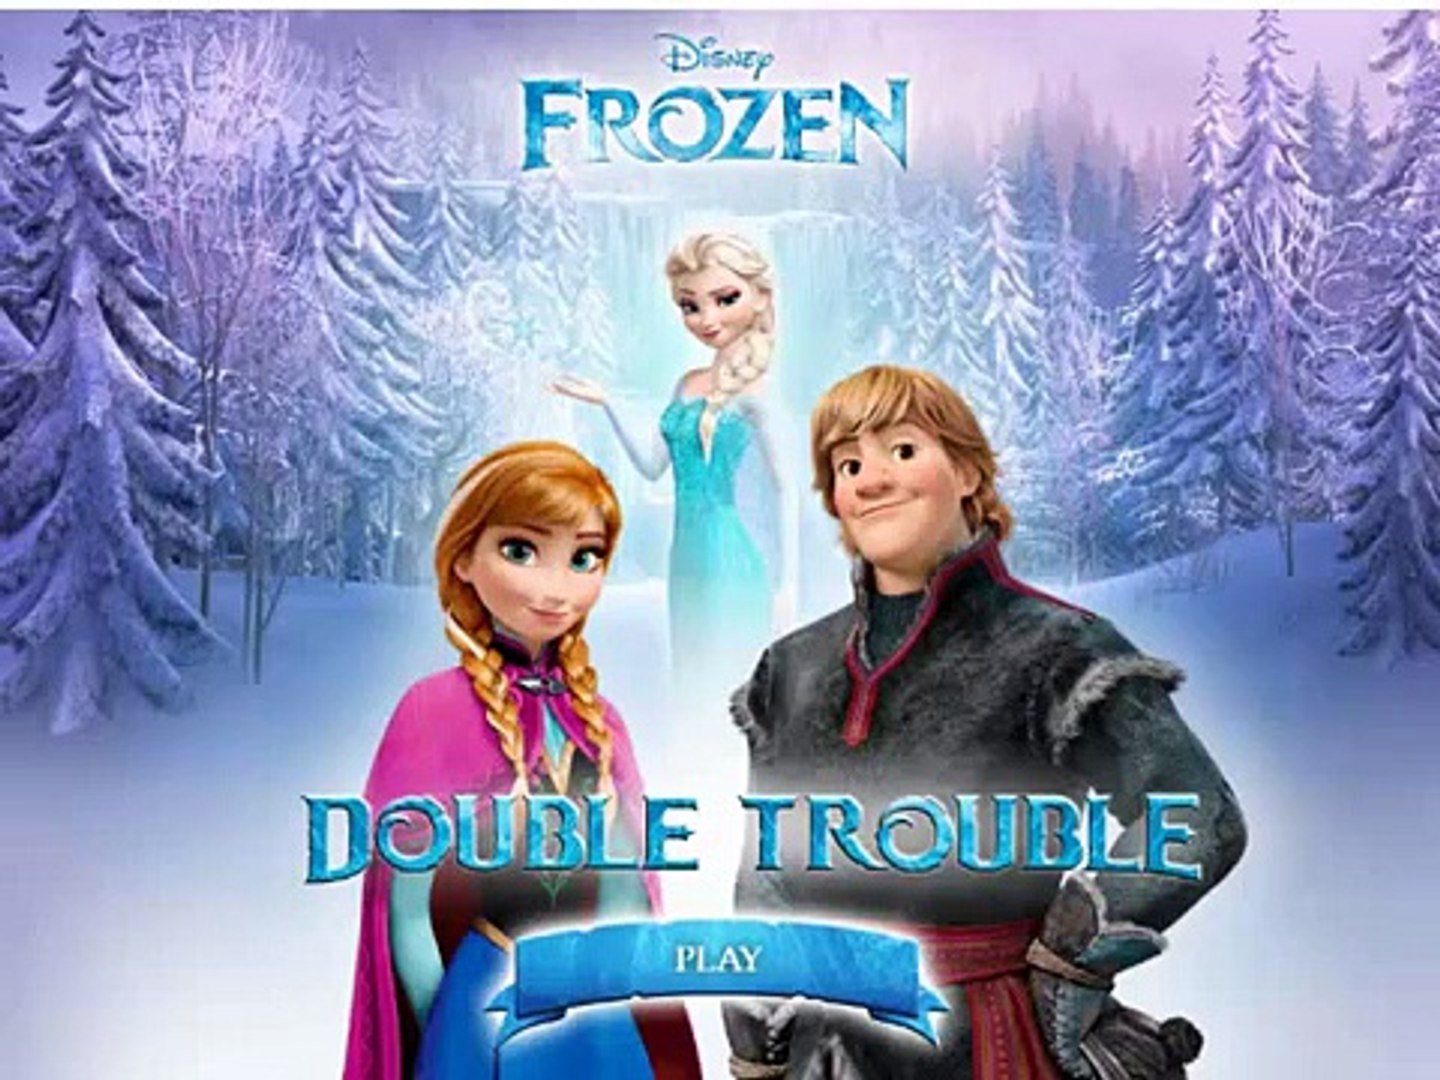 Frozen double trouble game , nice game play for kids , best game for kids , super game for child